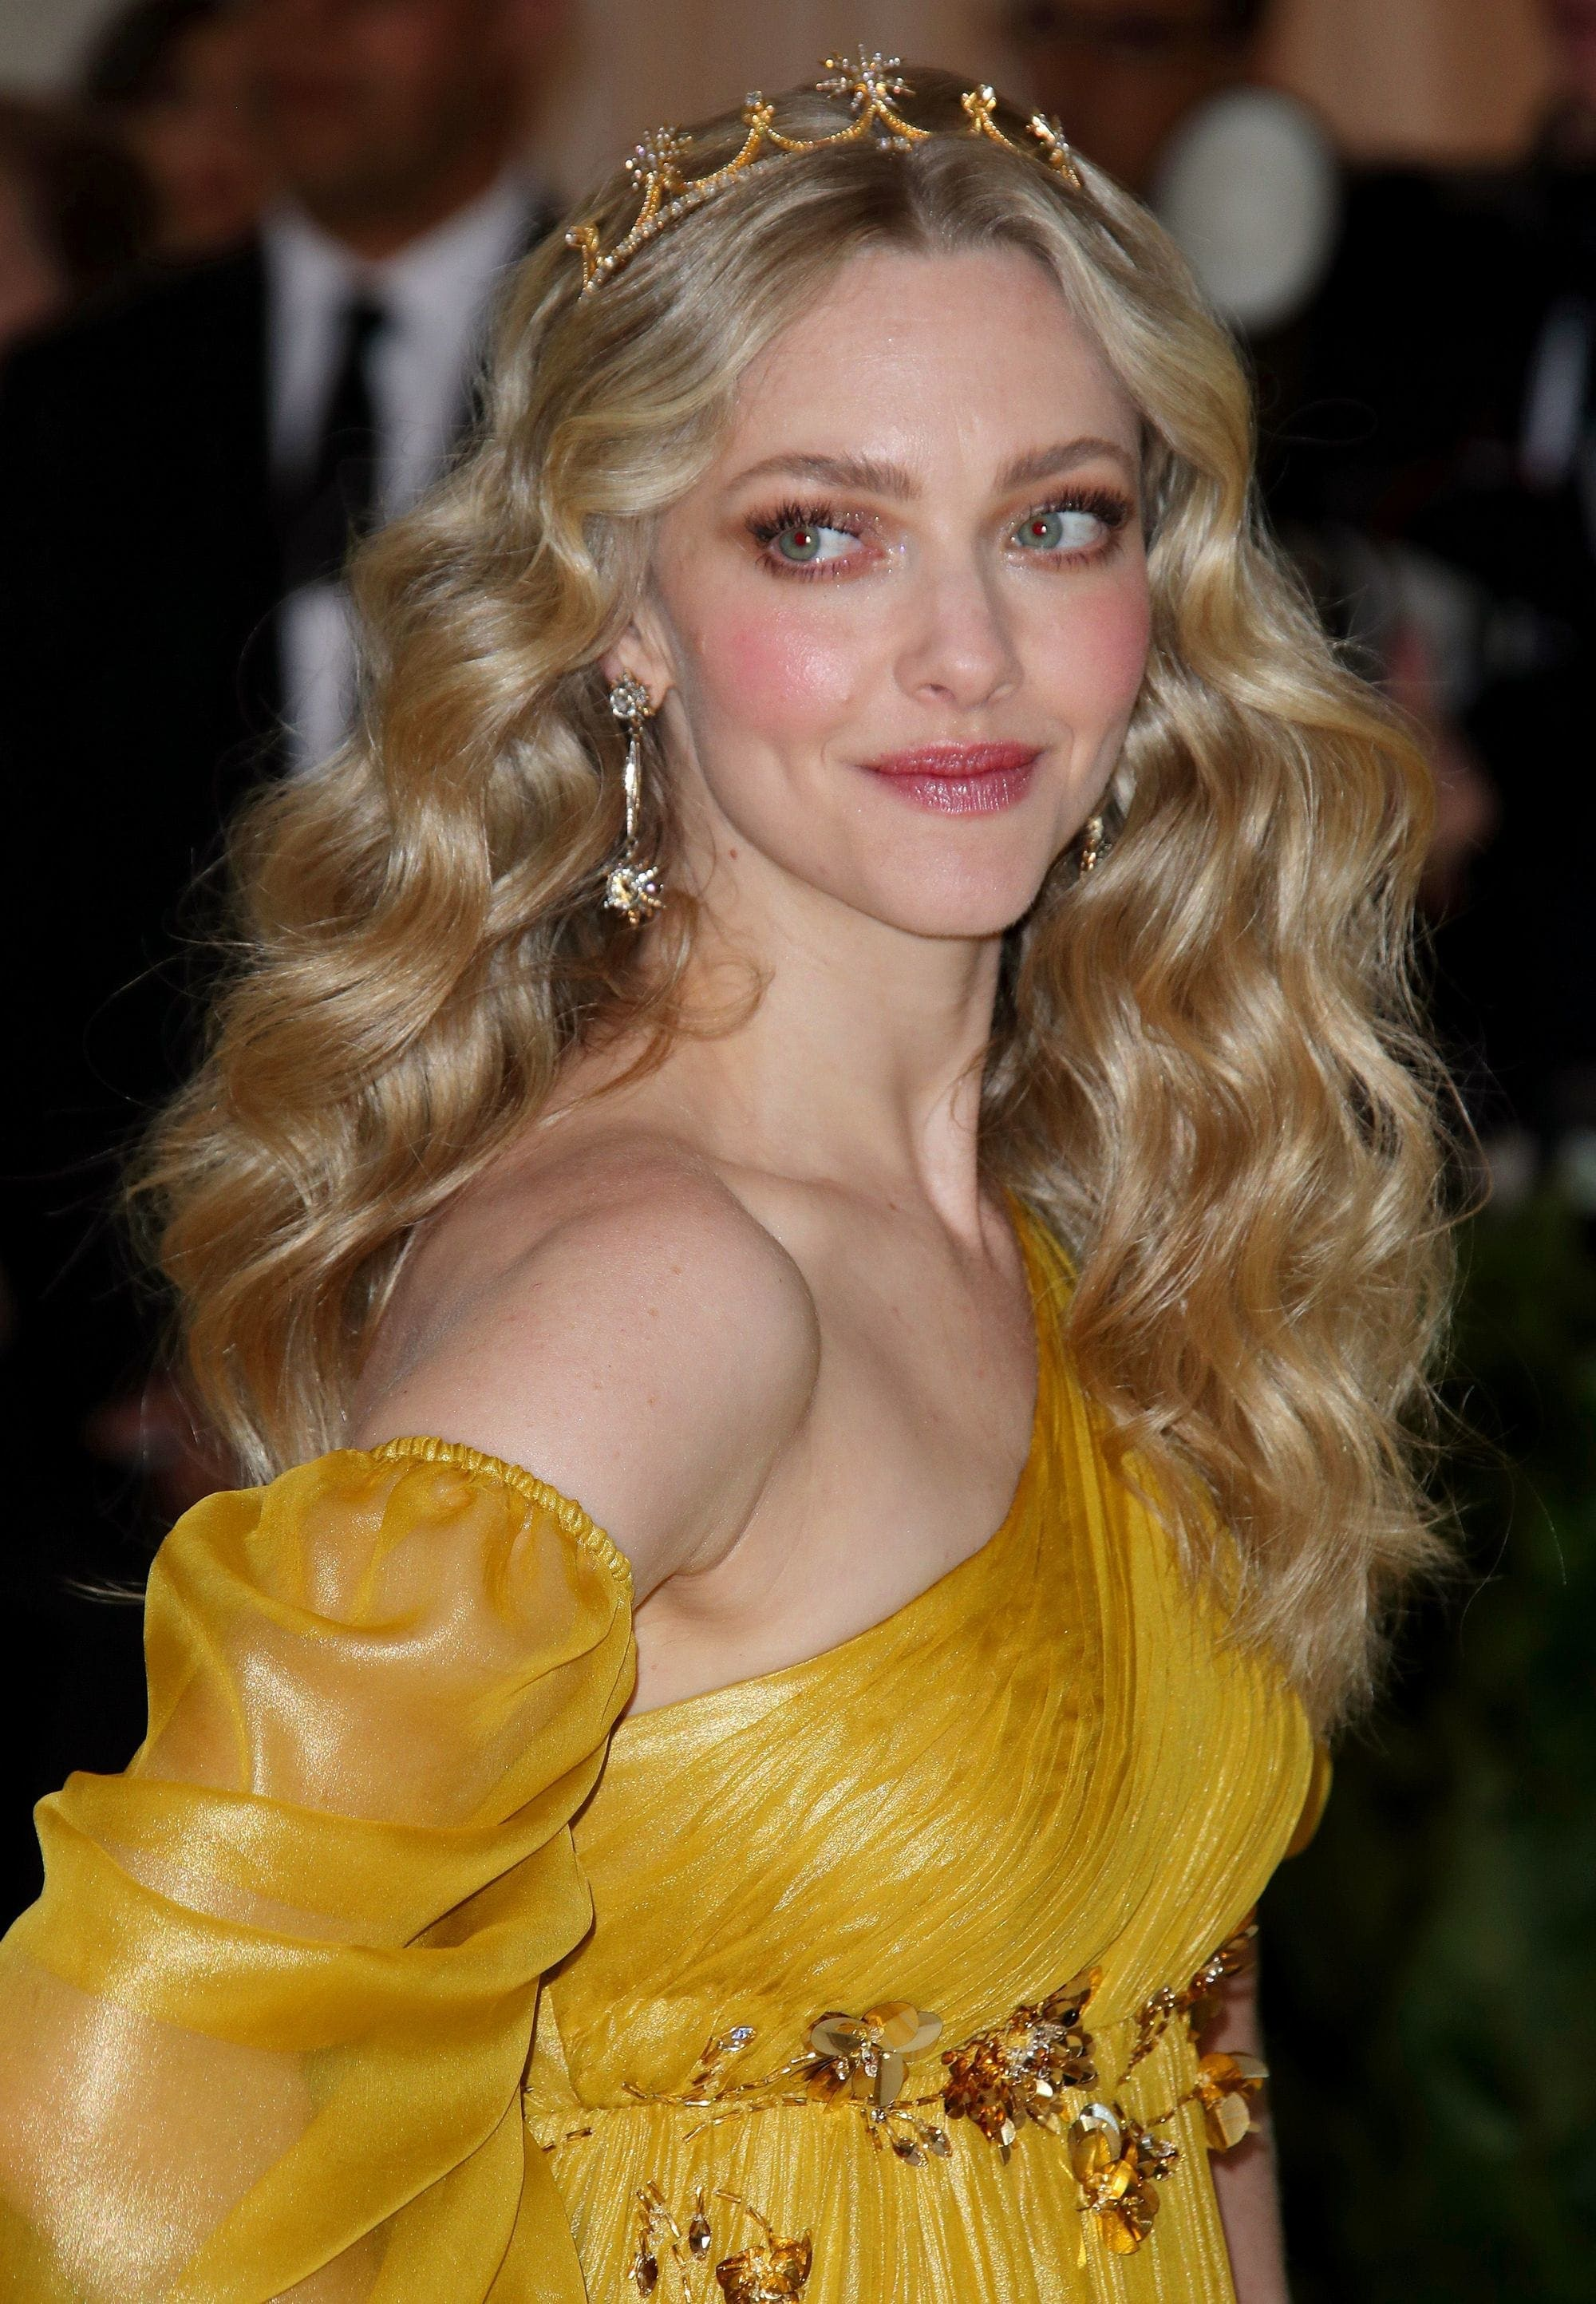 amanda-seyfried-angel-waves.